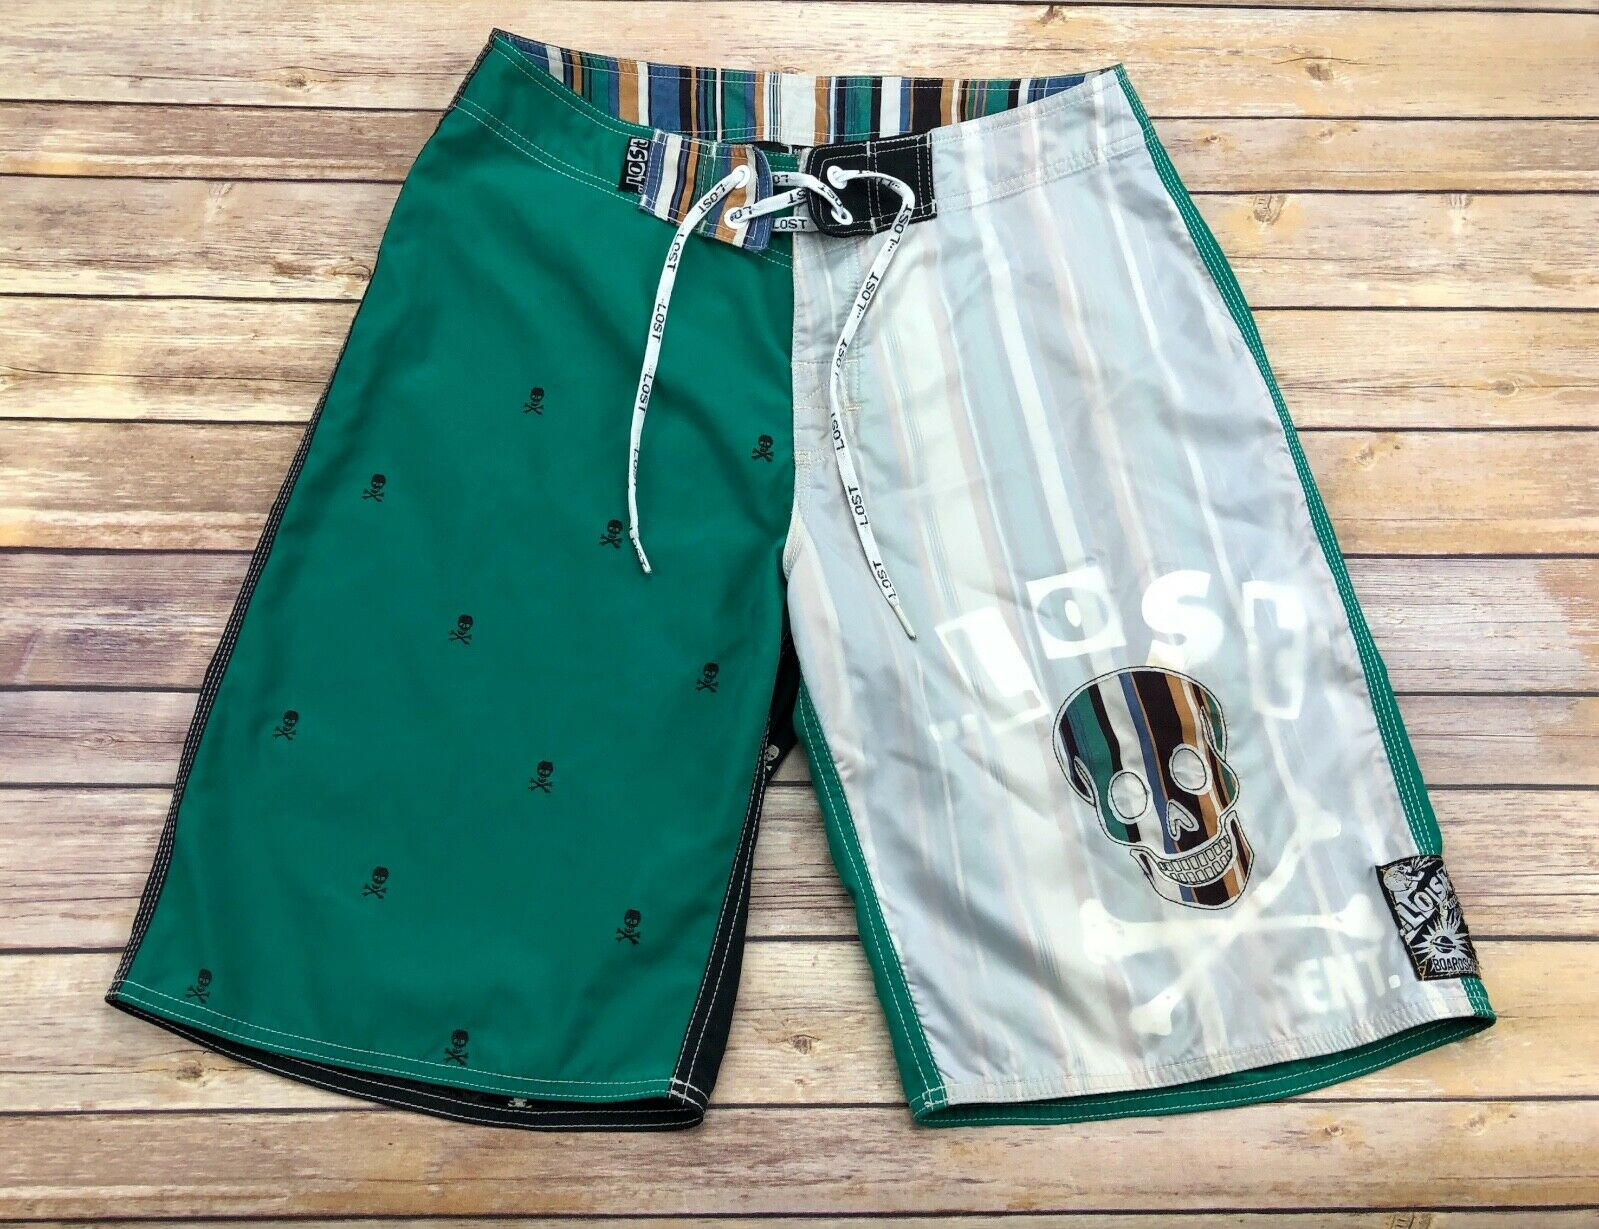 VTG Lost Green Skull & Cross Bones Sheer Overlay Striped Skull Board Shorts 31